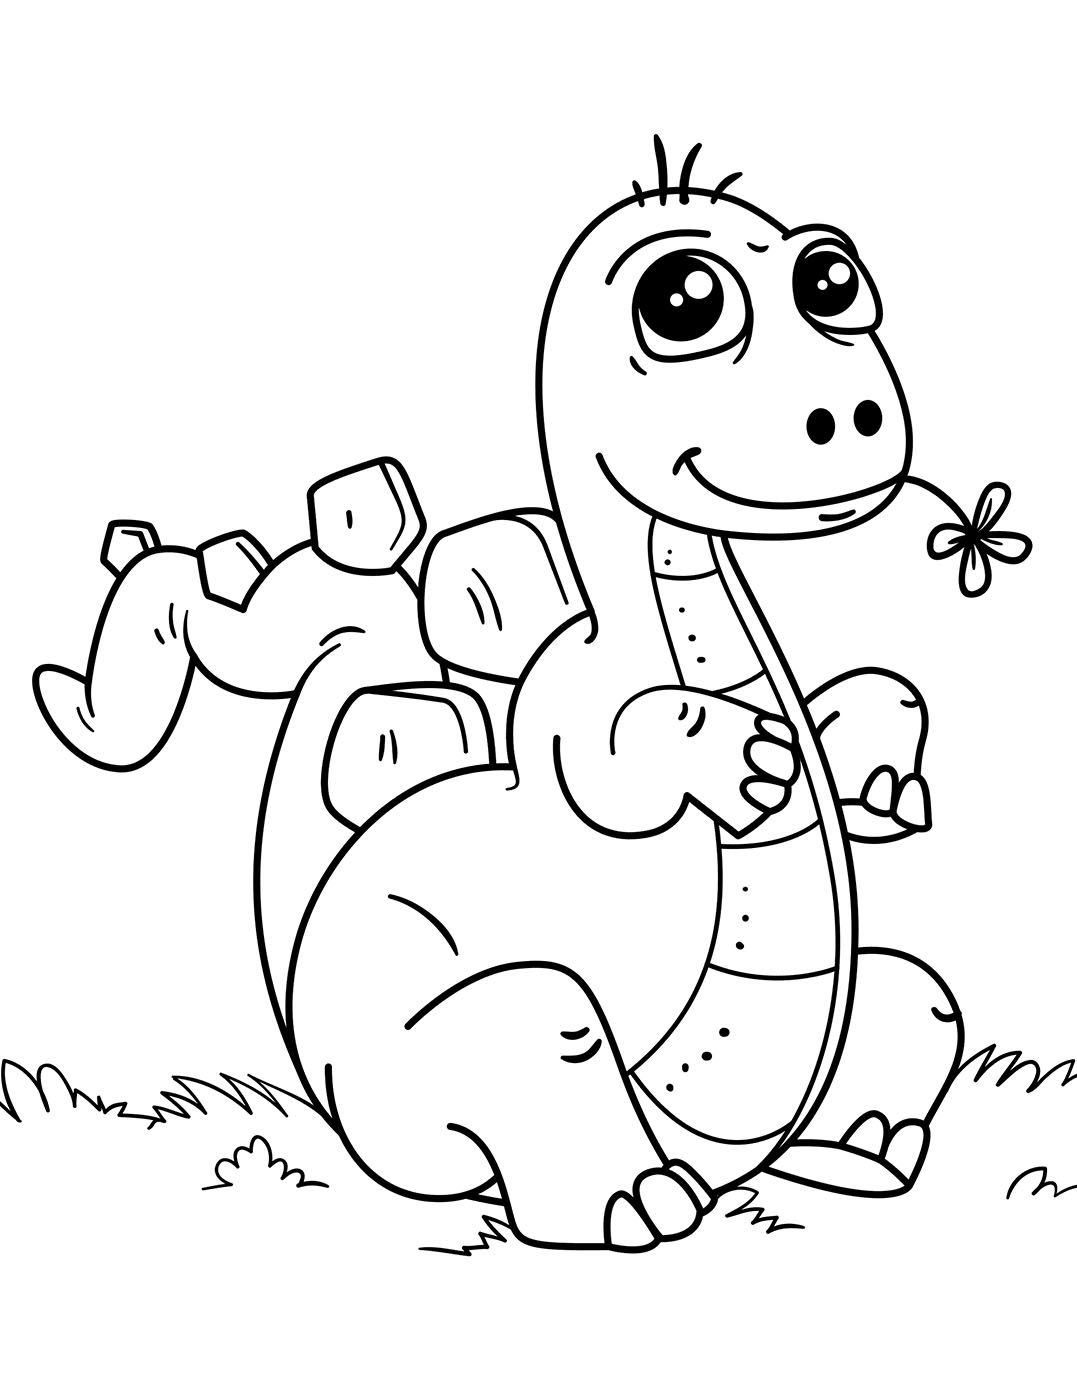 dinosaur coloring pages for kids dinosaurs to download for free brachiosaurus egg kids coloring pages for dinosaur